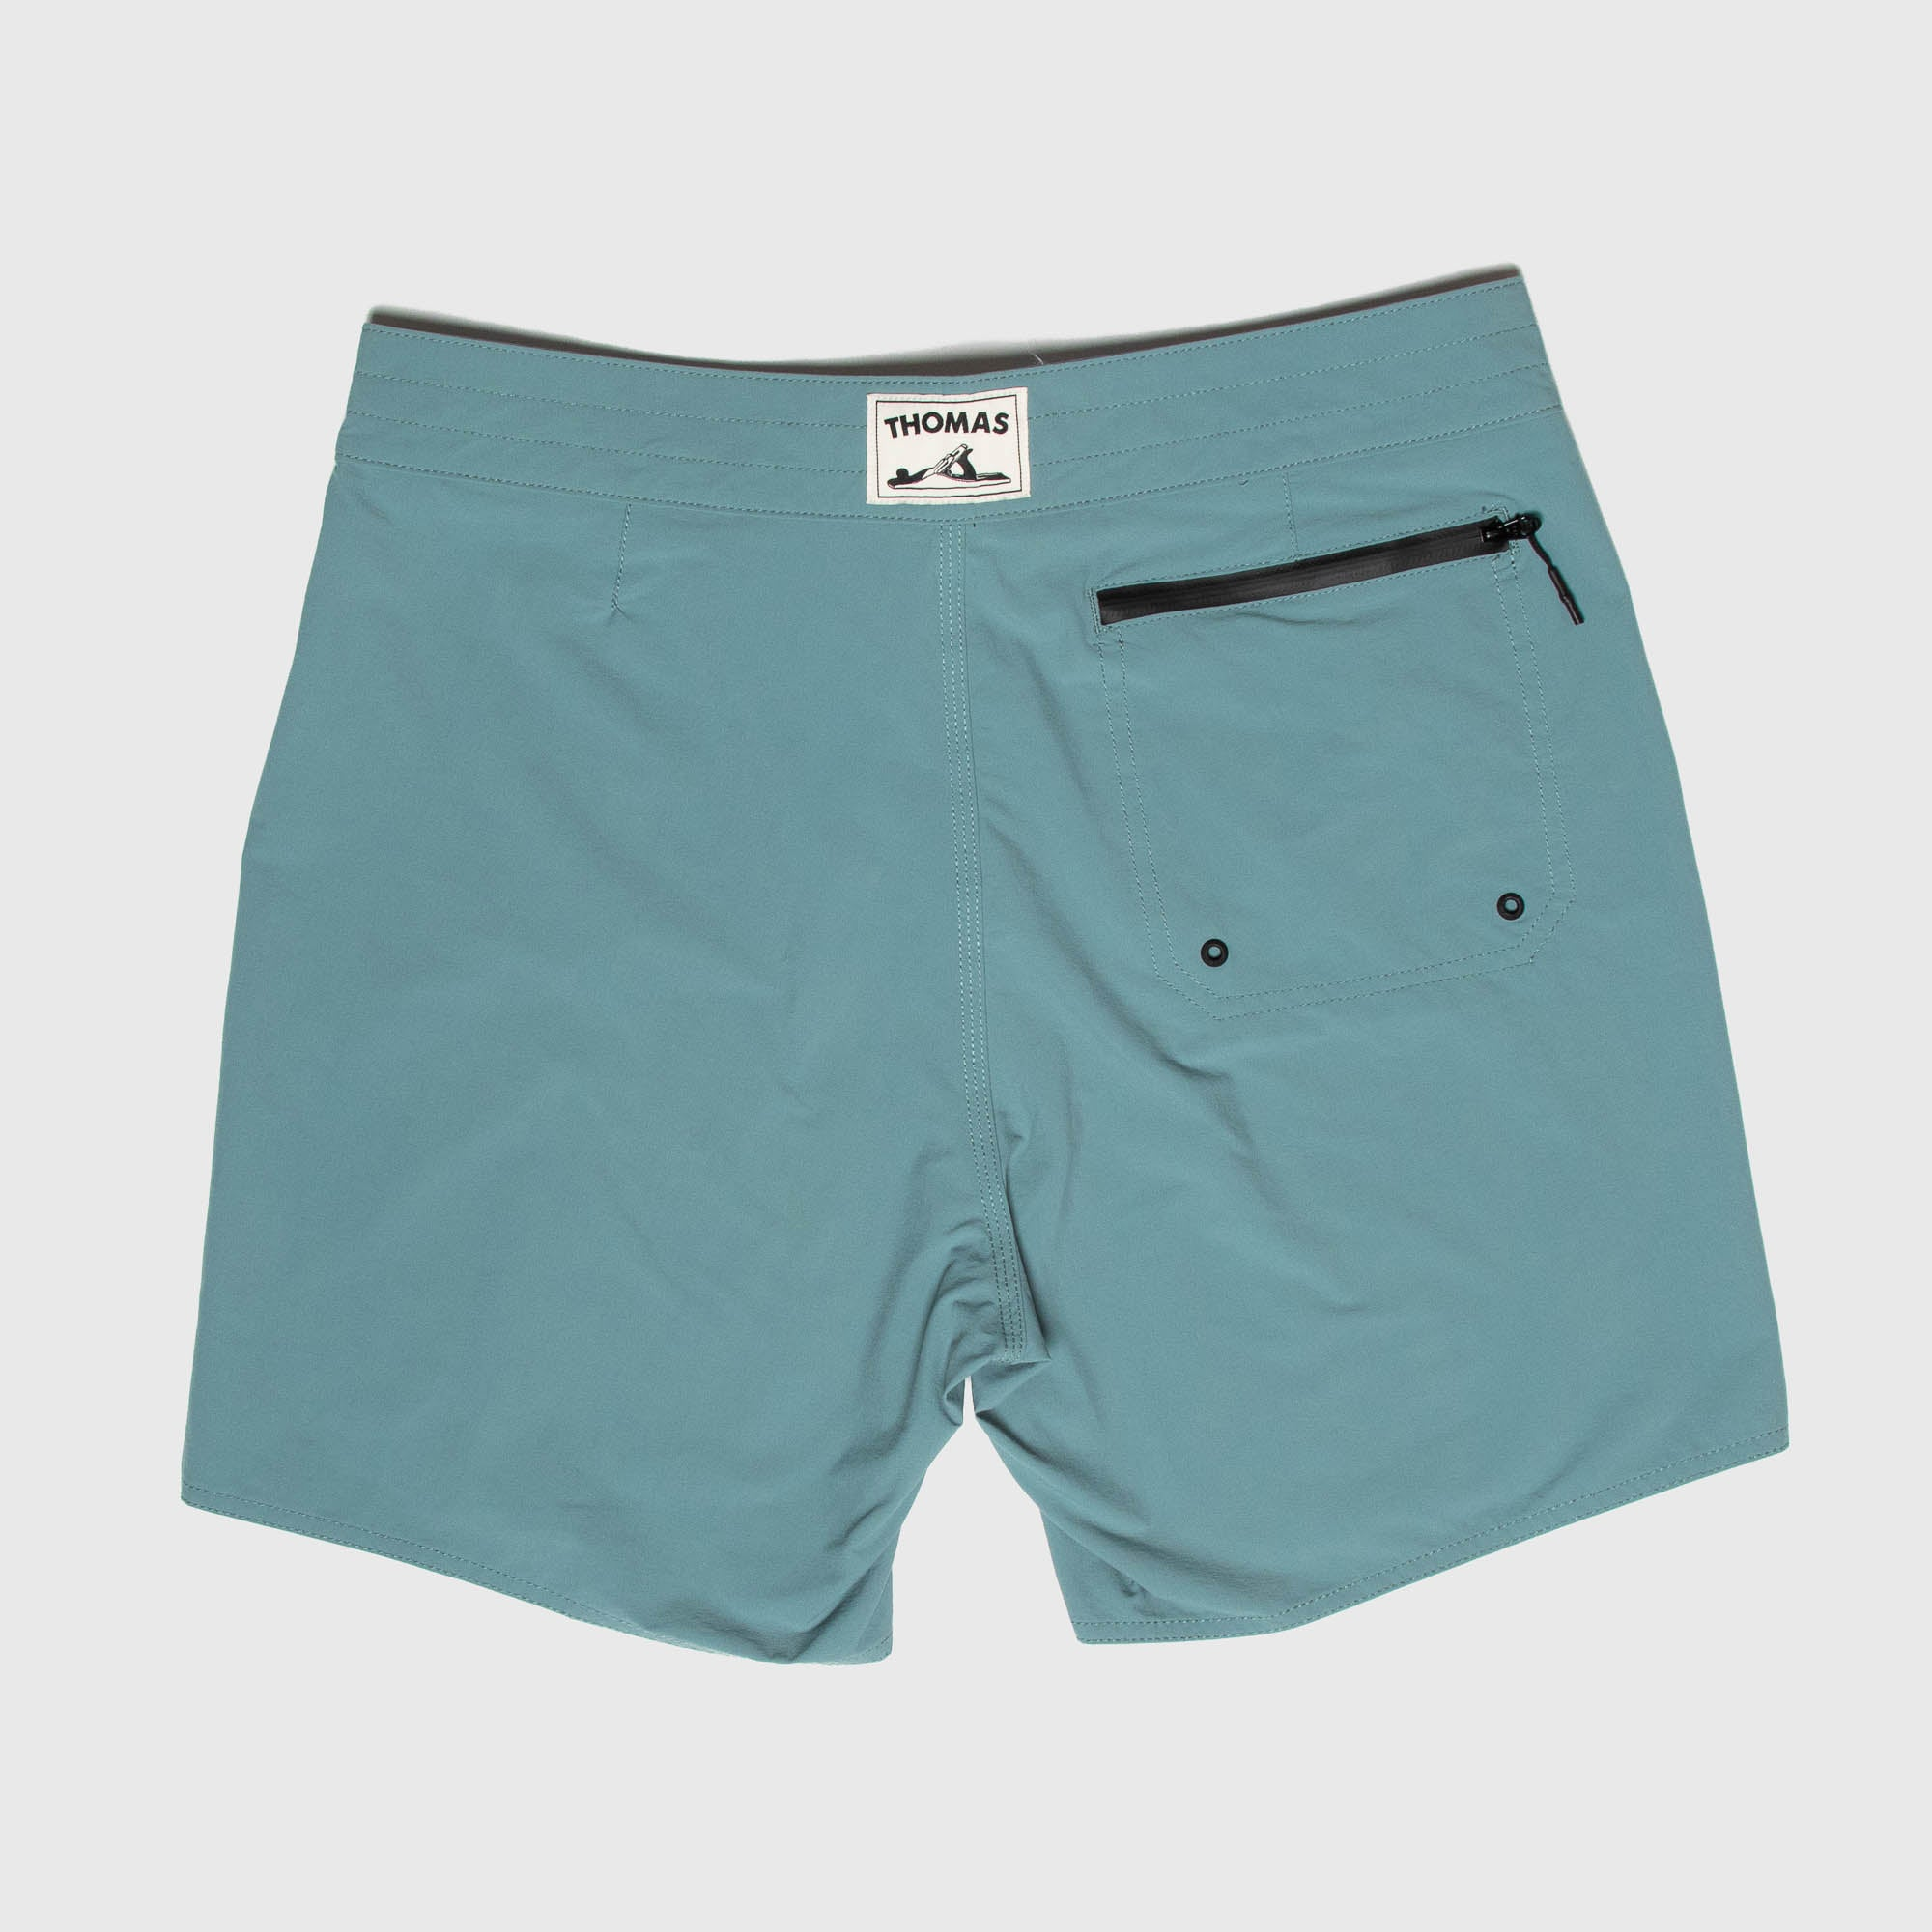 The Tom Teal Board Shorts